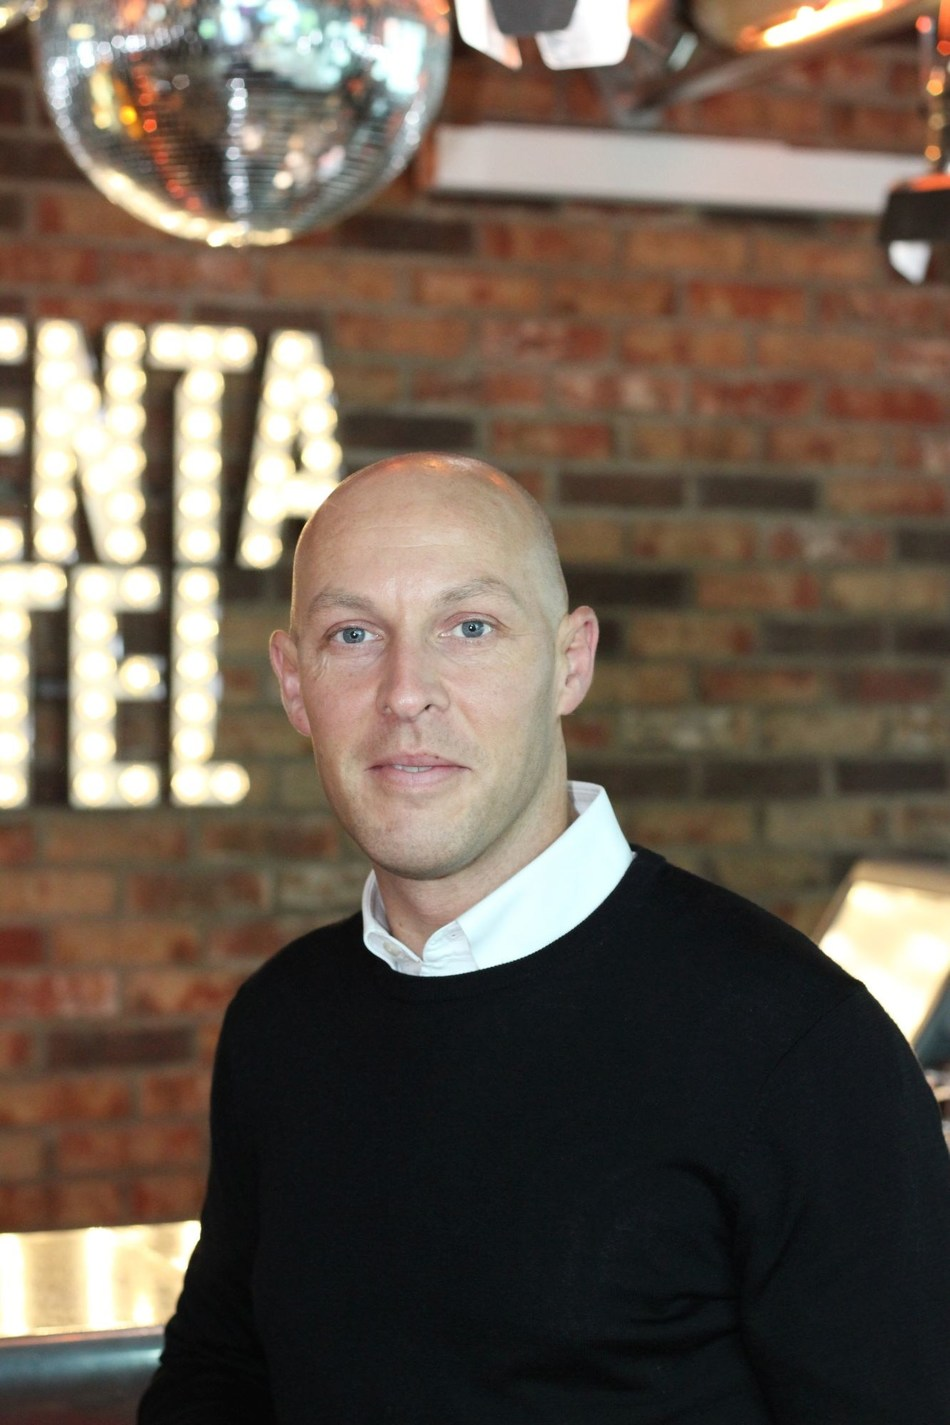 Regional Director pentahotels UK, Ben Thomas (PRNewsfoto/pentahotels)